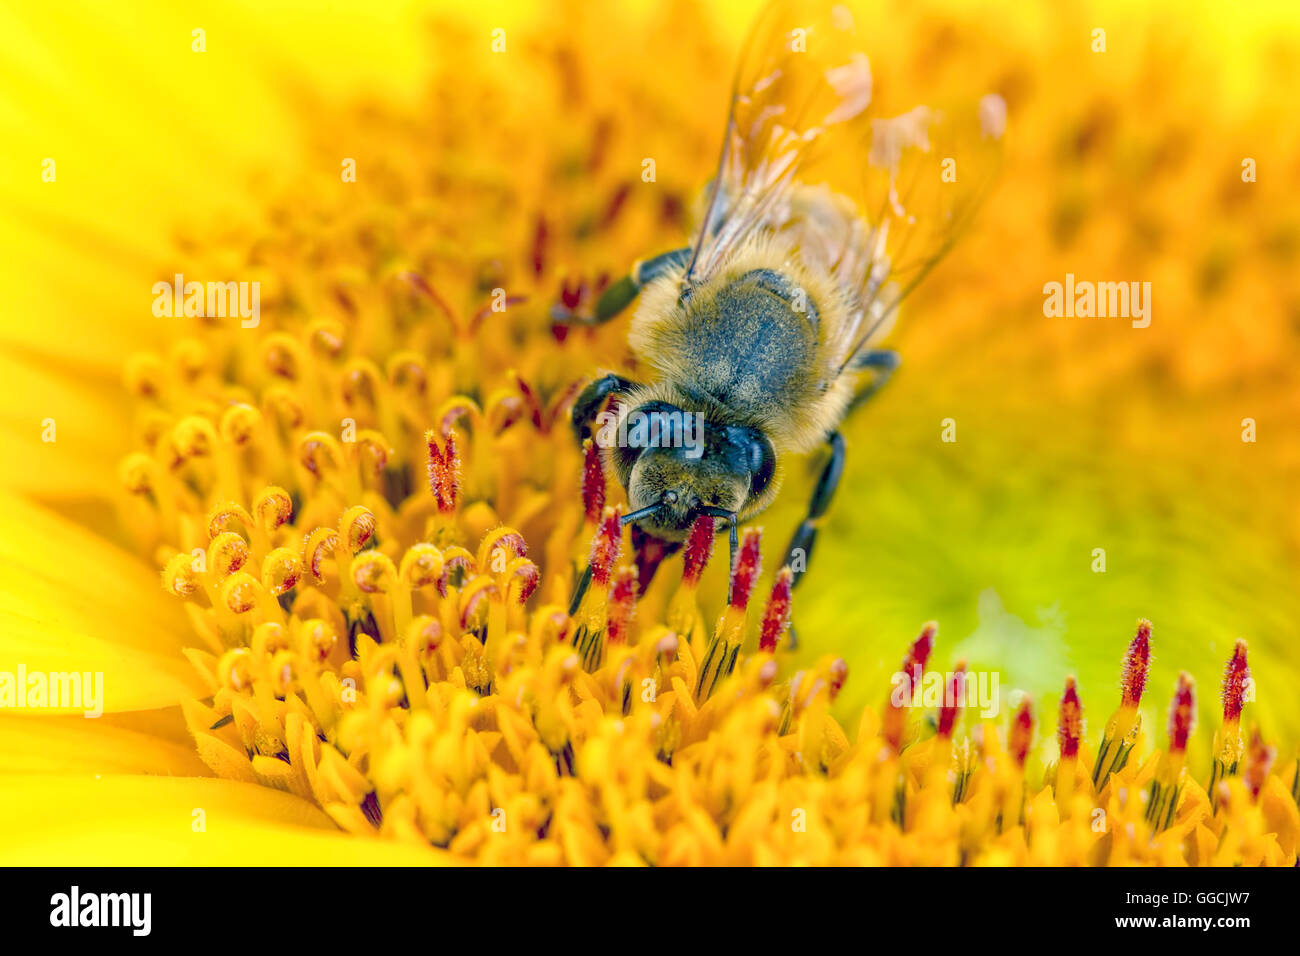 Macro of bee on flower. Stock Photo